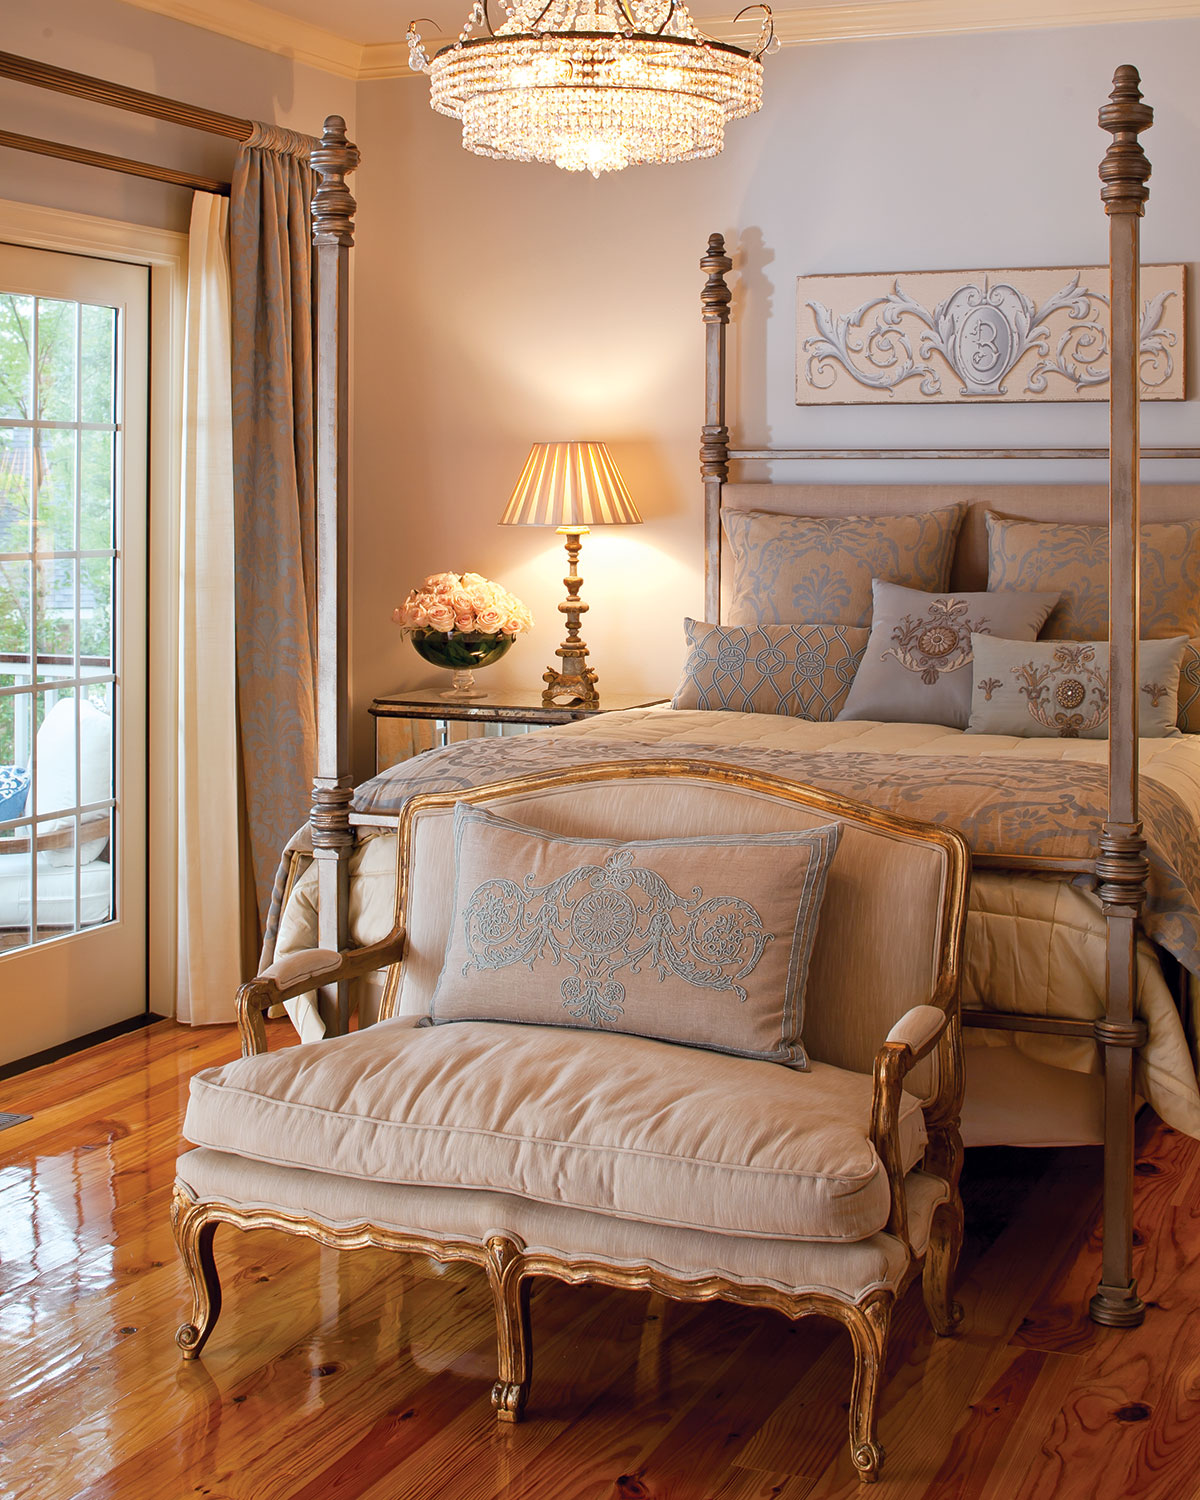 Bedrooms Bedroom Decorating: 10 Dreamy Southern Bedrooms